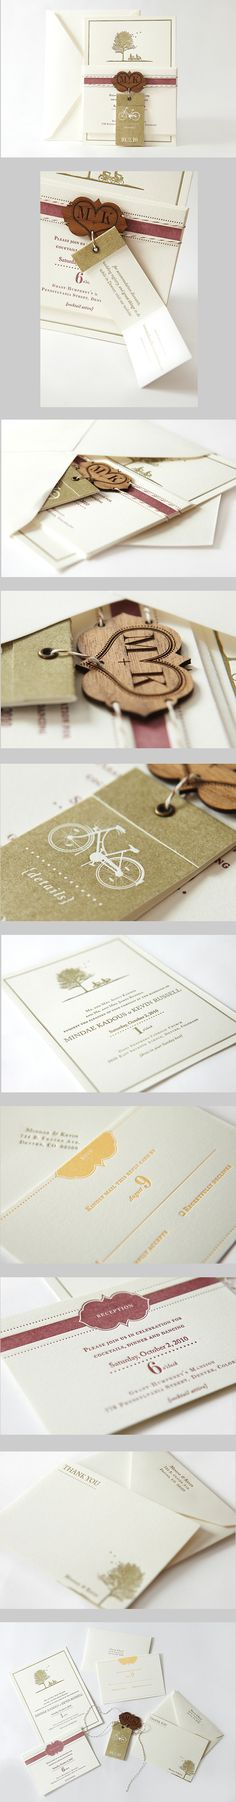 tag unfolds..cute idea for the invite details